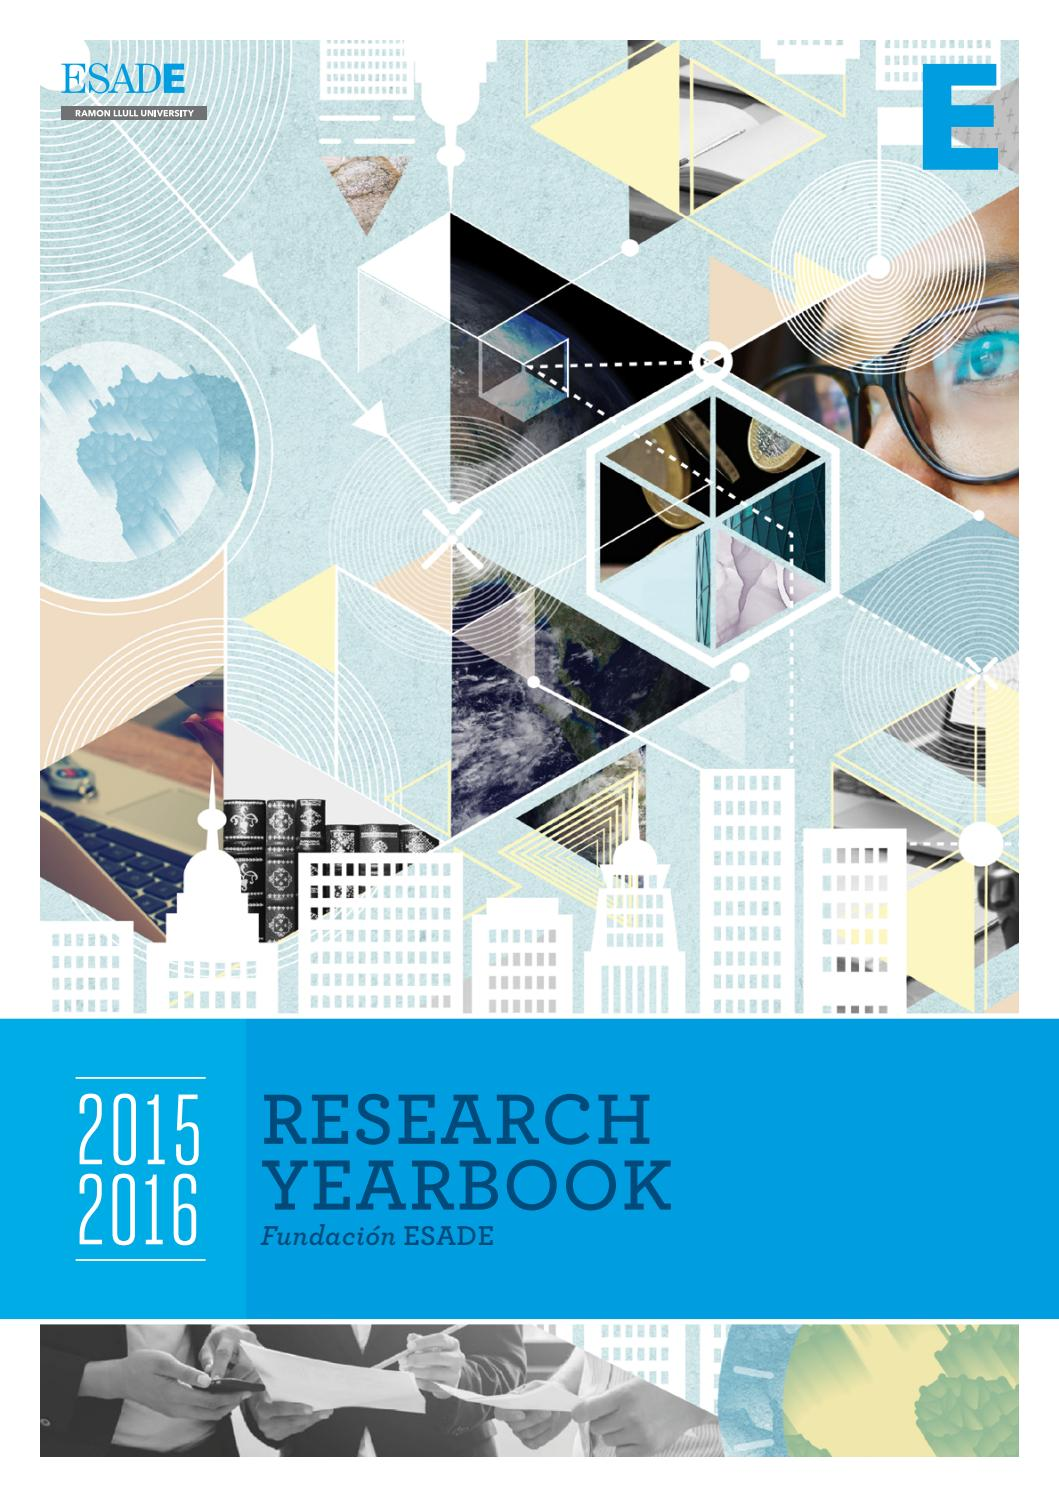 Esade Research Yearbook 2015 16 By Issuu Website Profesor Jos Luis Crdenas Ingeniero Ejecucin En Sonido